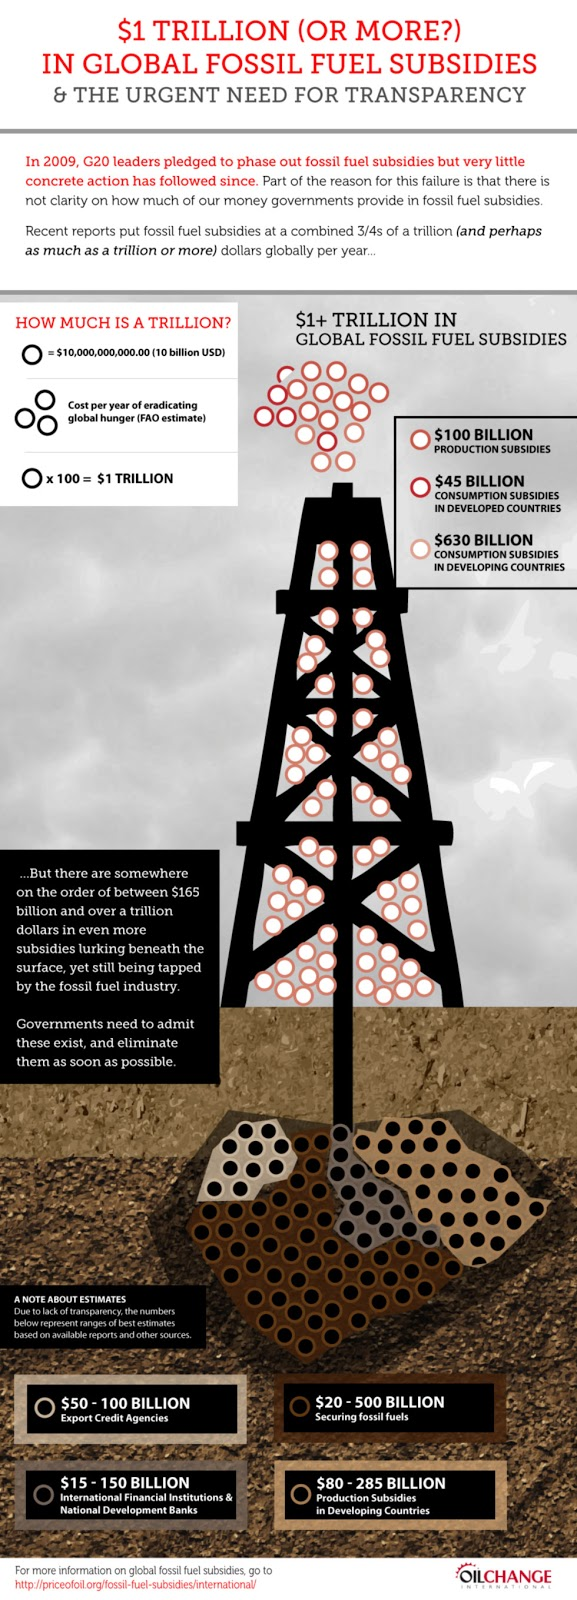 fossil fuel subsidies: overview - oil change internationaloil change